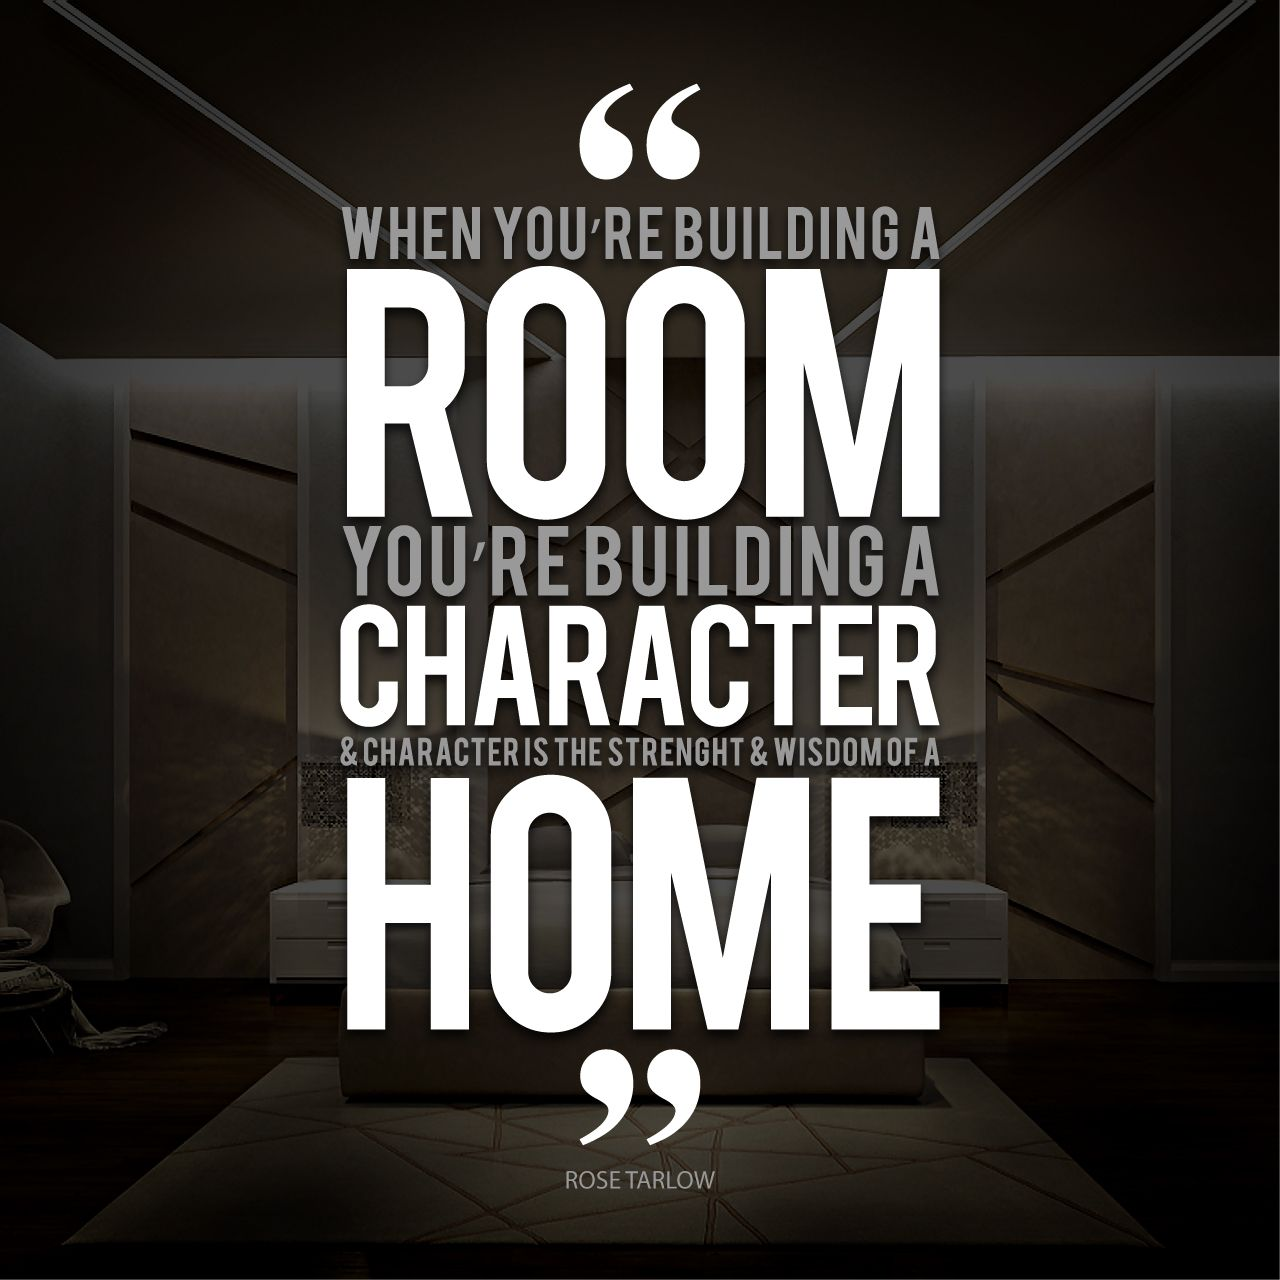 Awesome Motivational Quote For Today! U201cWhen Youu0027re Building A Room, Youu0027re Building  A Character, And Character Is The Strength And Wisdom Of A Home.